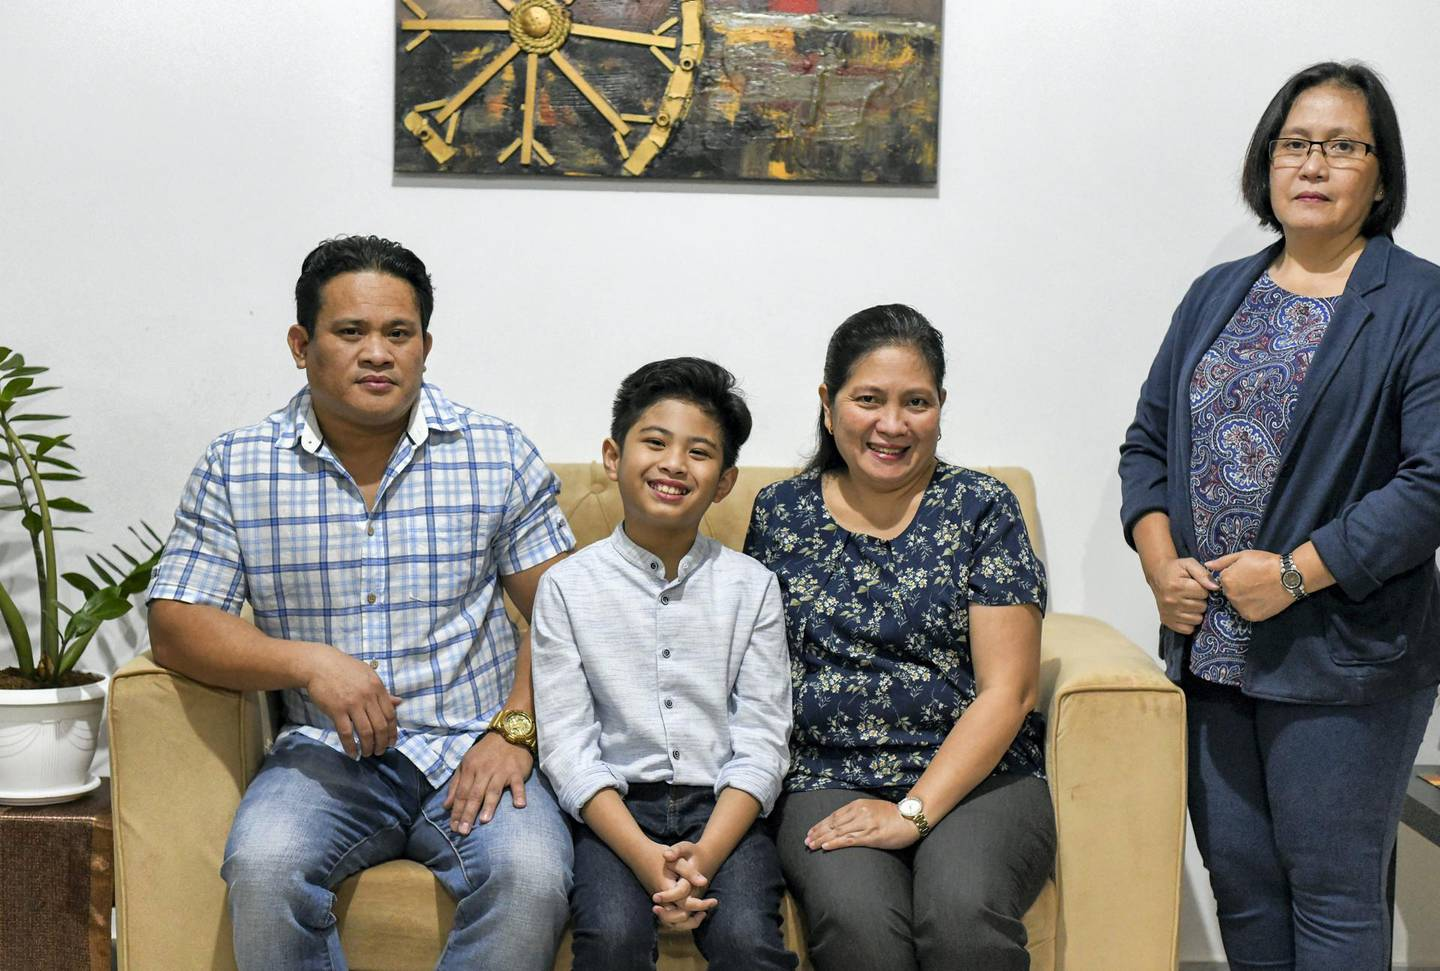 Peter Rosalita-AD  Peter Rosalita, 10, with his parents Ruel Rosalita, Vilma Villegas, and aunt Mary Jane Villegas in Abu Dhabi on June 7, 2021. Reporter: David Tusing Features